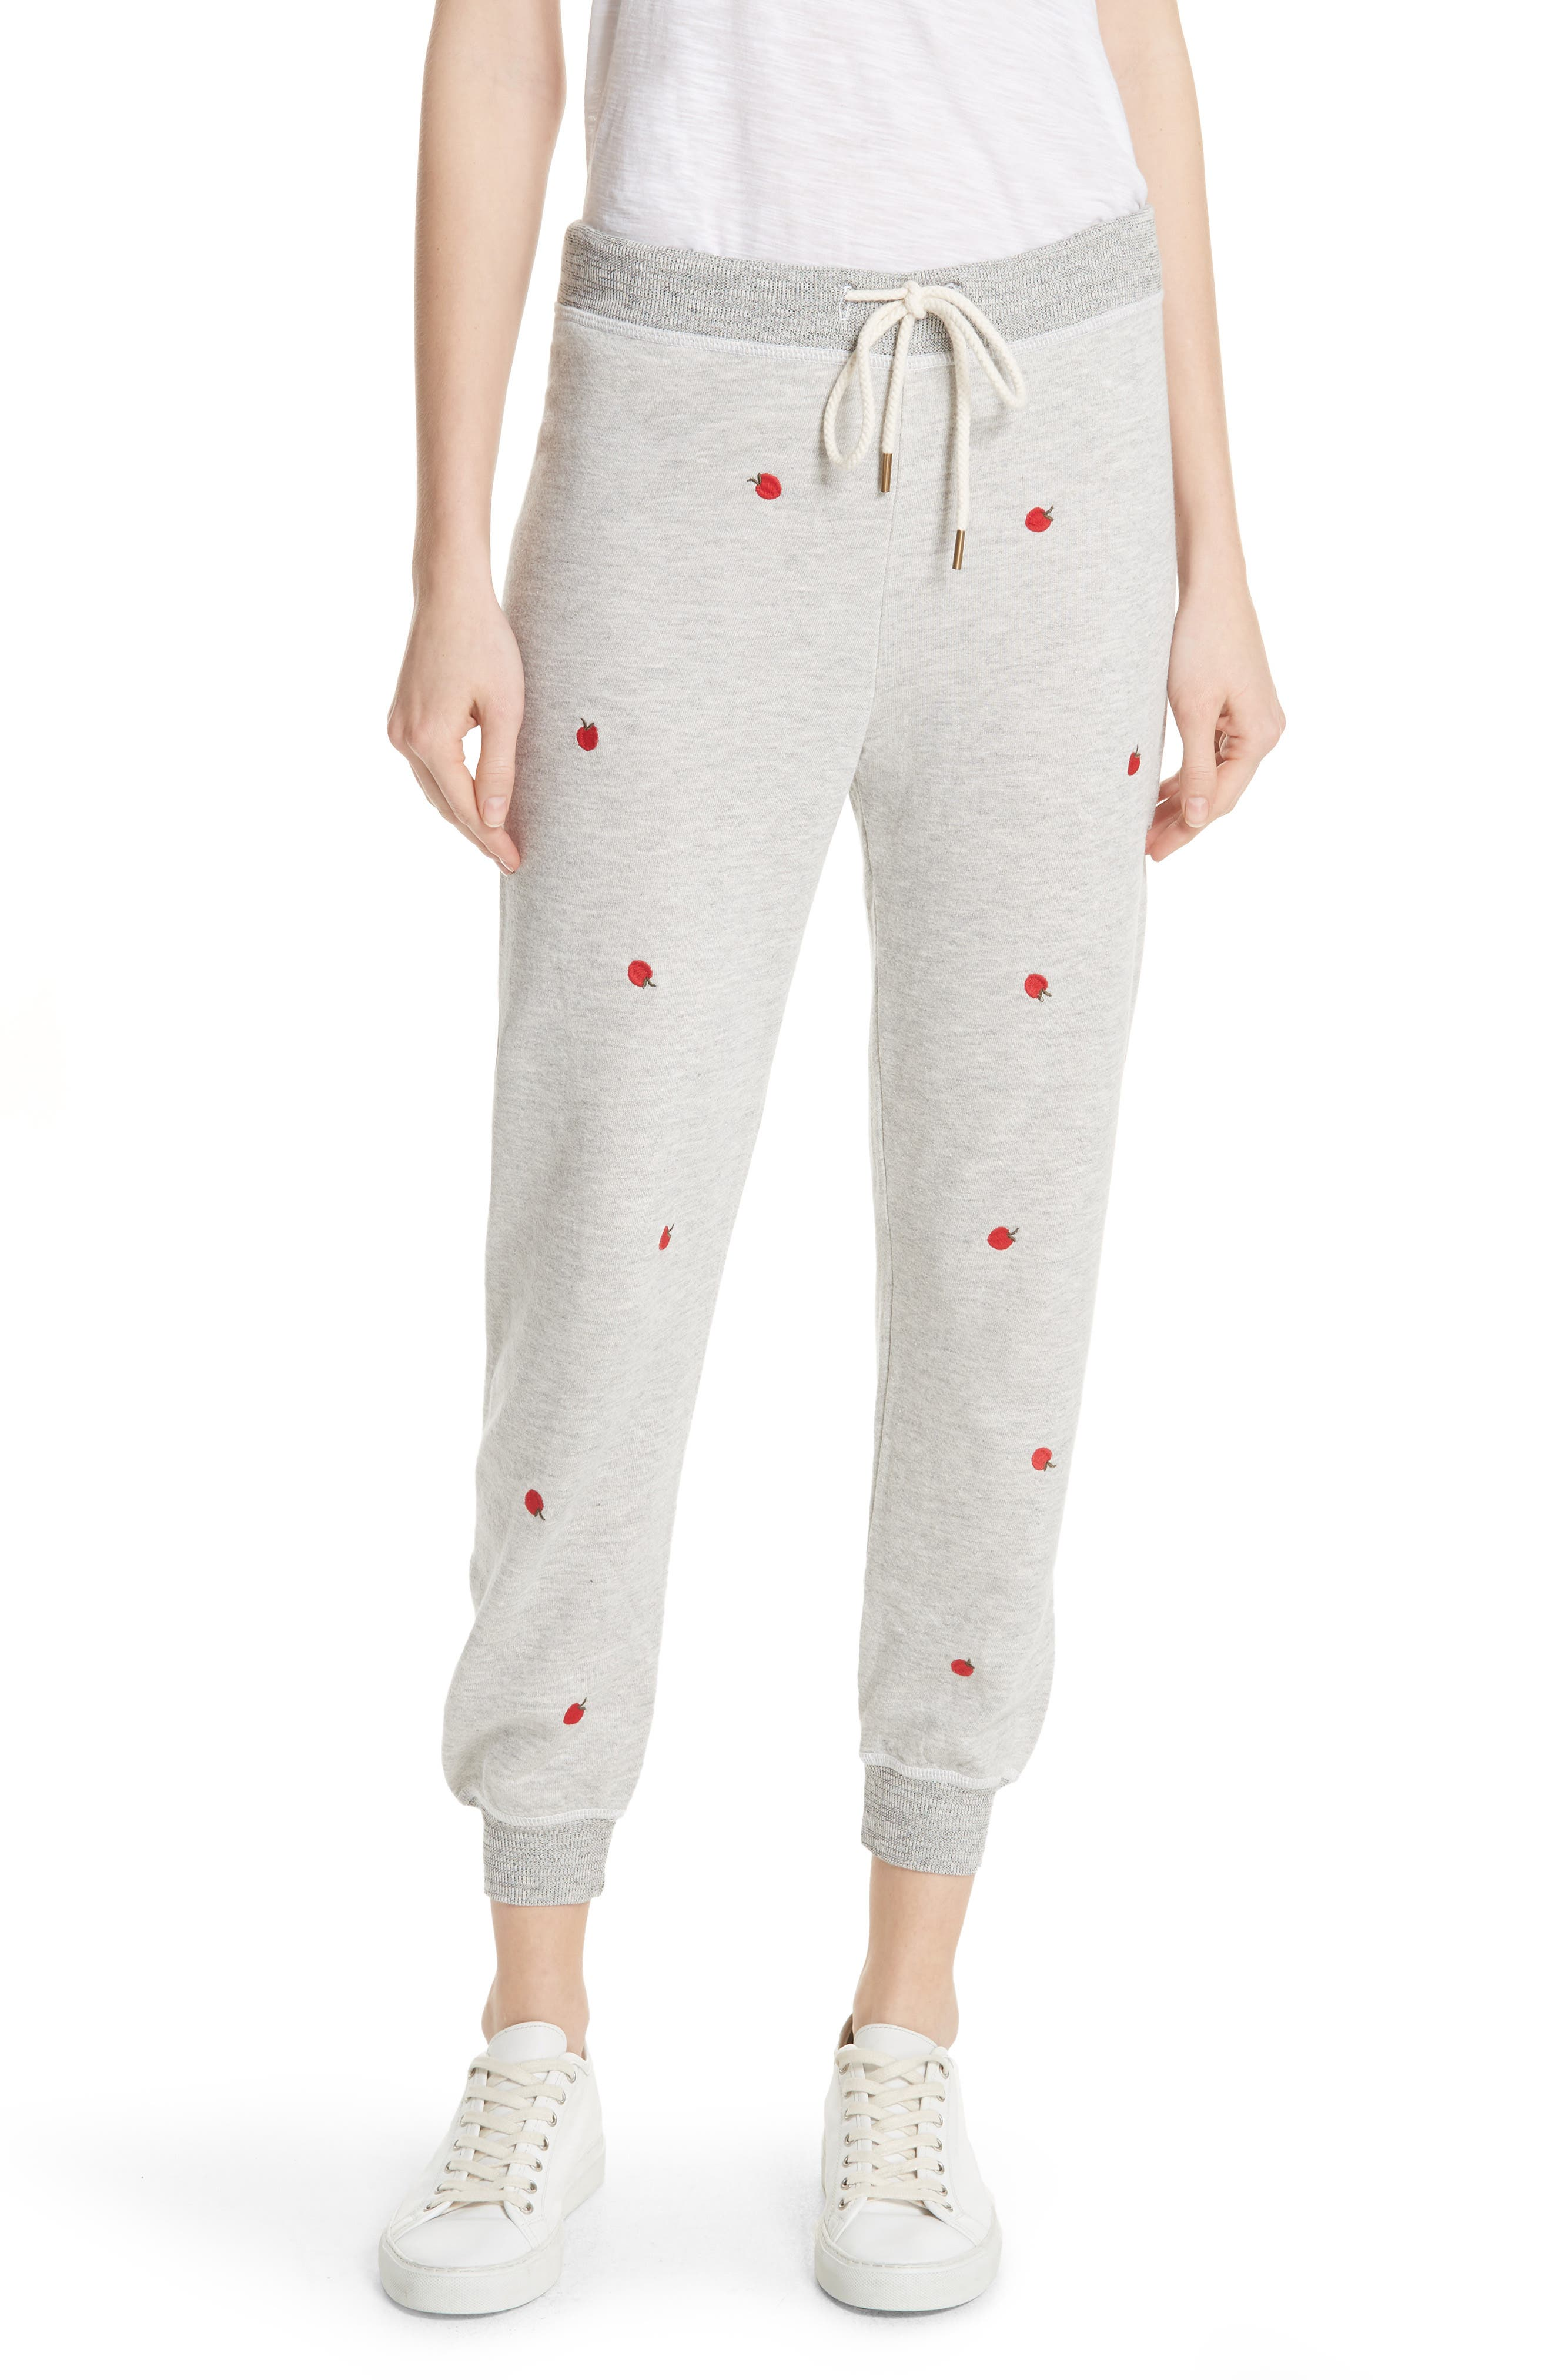 The Cropped Sweatpants,                         Main,                         color, Light Heather Grey/ Red Apples